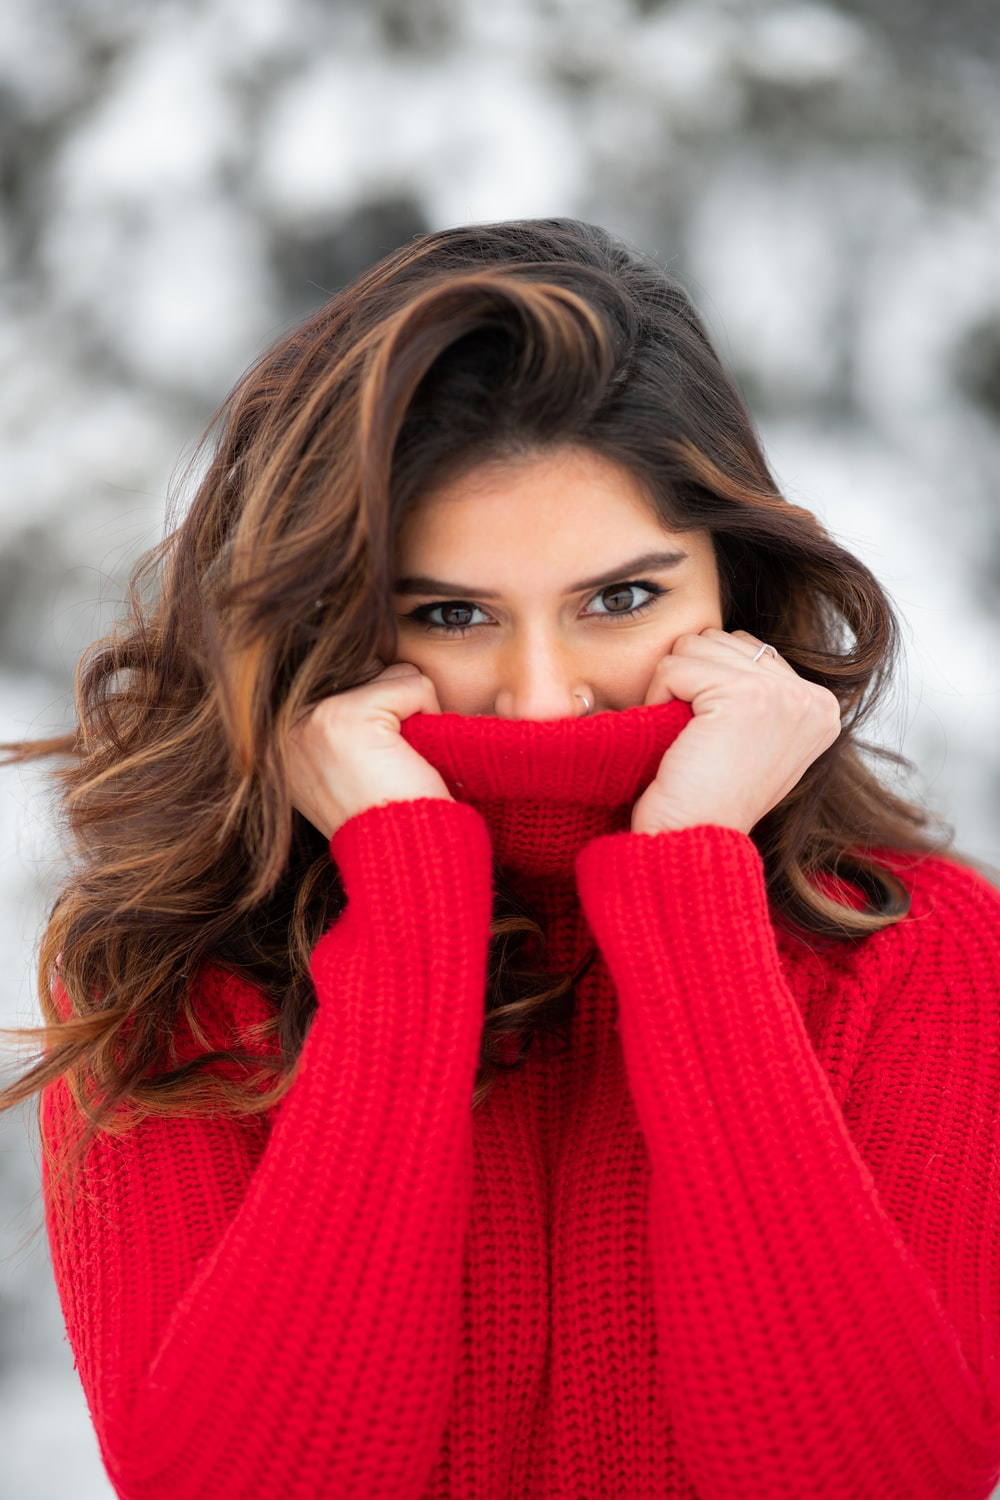 woman in red knit sweater covering her face with her hand